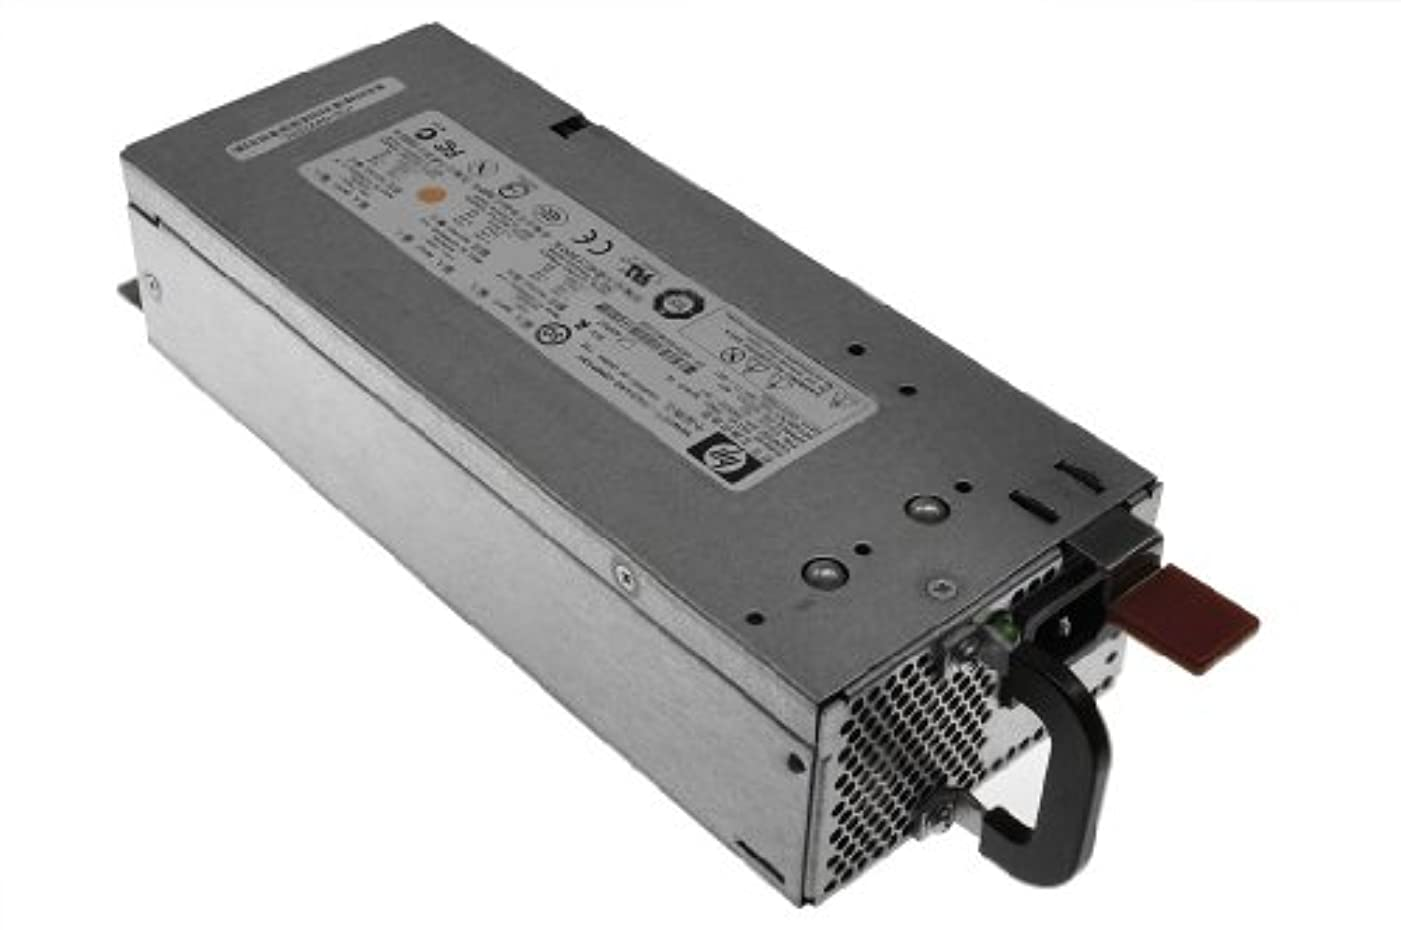 洗練された風味シールHP 379123-001 1000W REDUNDANT Power Supply For PROLIANT ML350 G5 ML370 G5 DL380 G5 .(P/N : 379123-001) [並行輸入品]